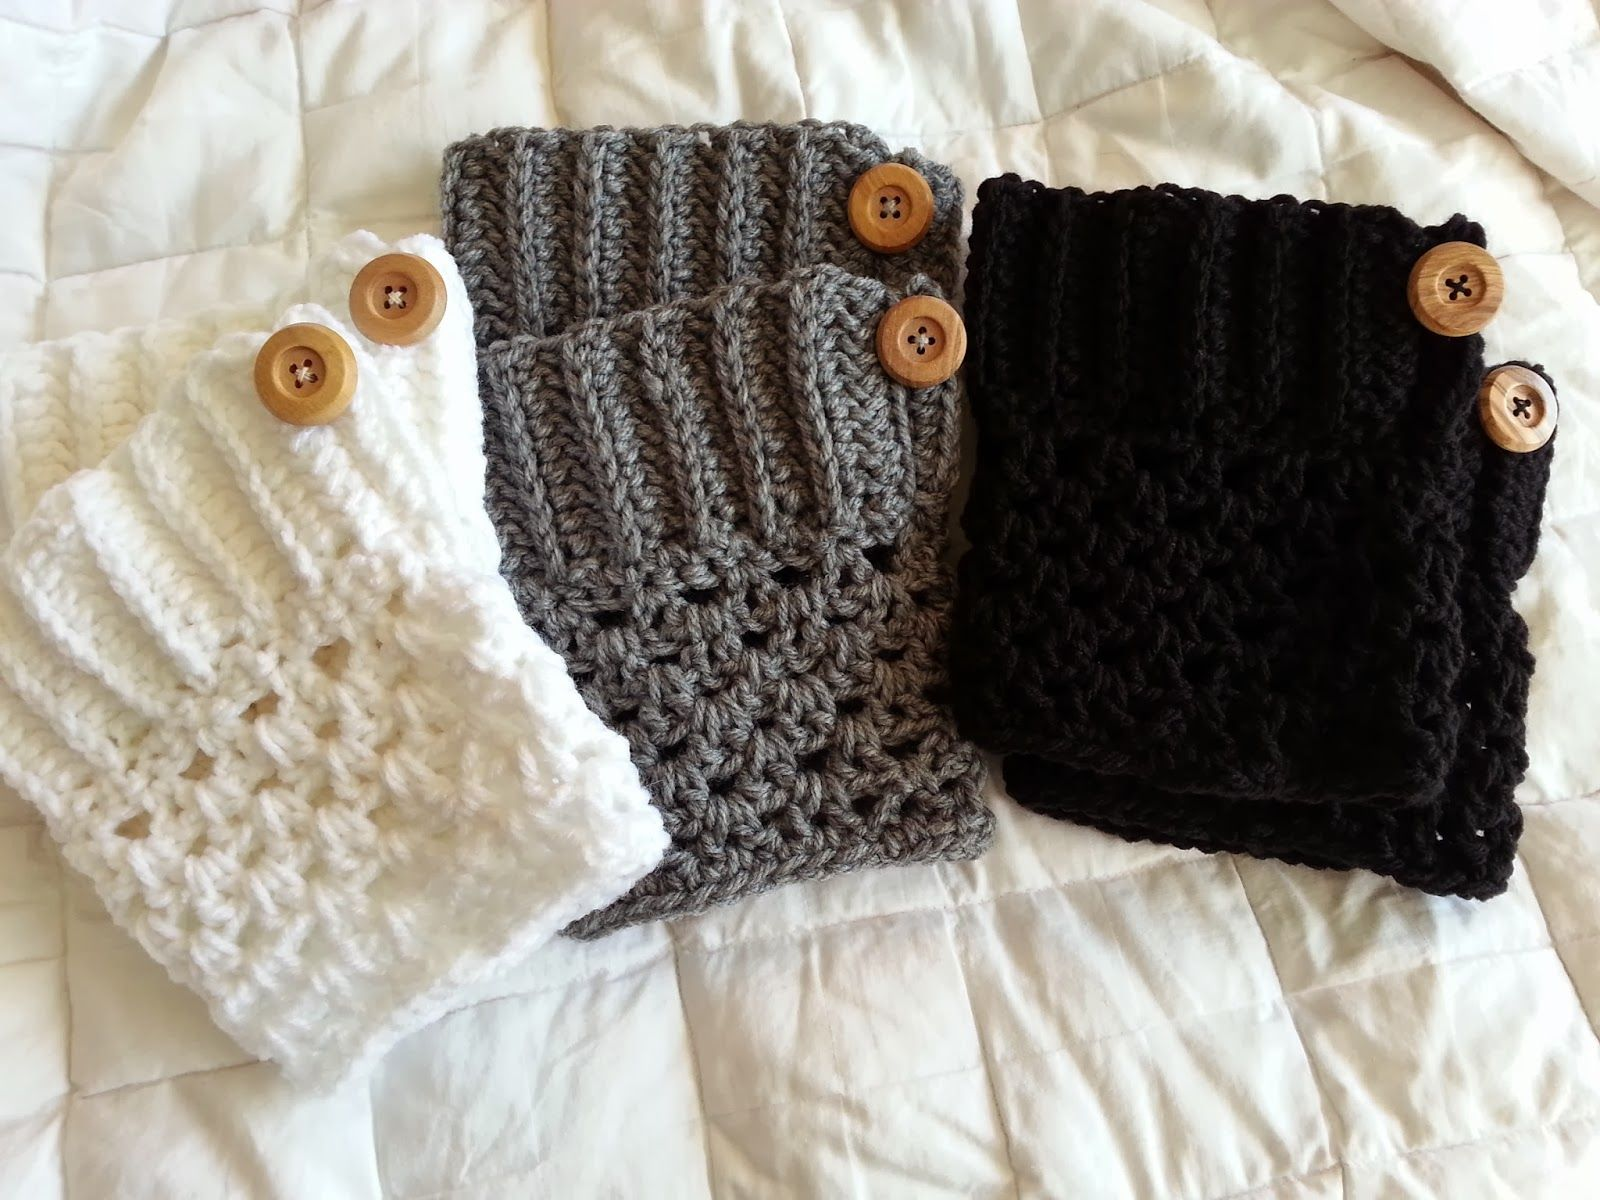 Free crochet boot patterns crochet from j projects to try 16 free boot cuff crochet patterns daisy cottage designs just wish my mamma was here to help me make them bankloansurffo Images